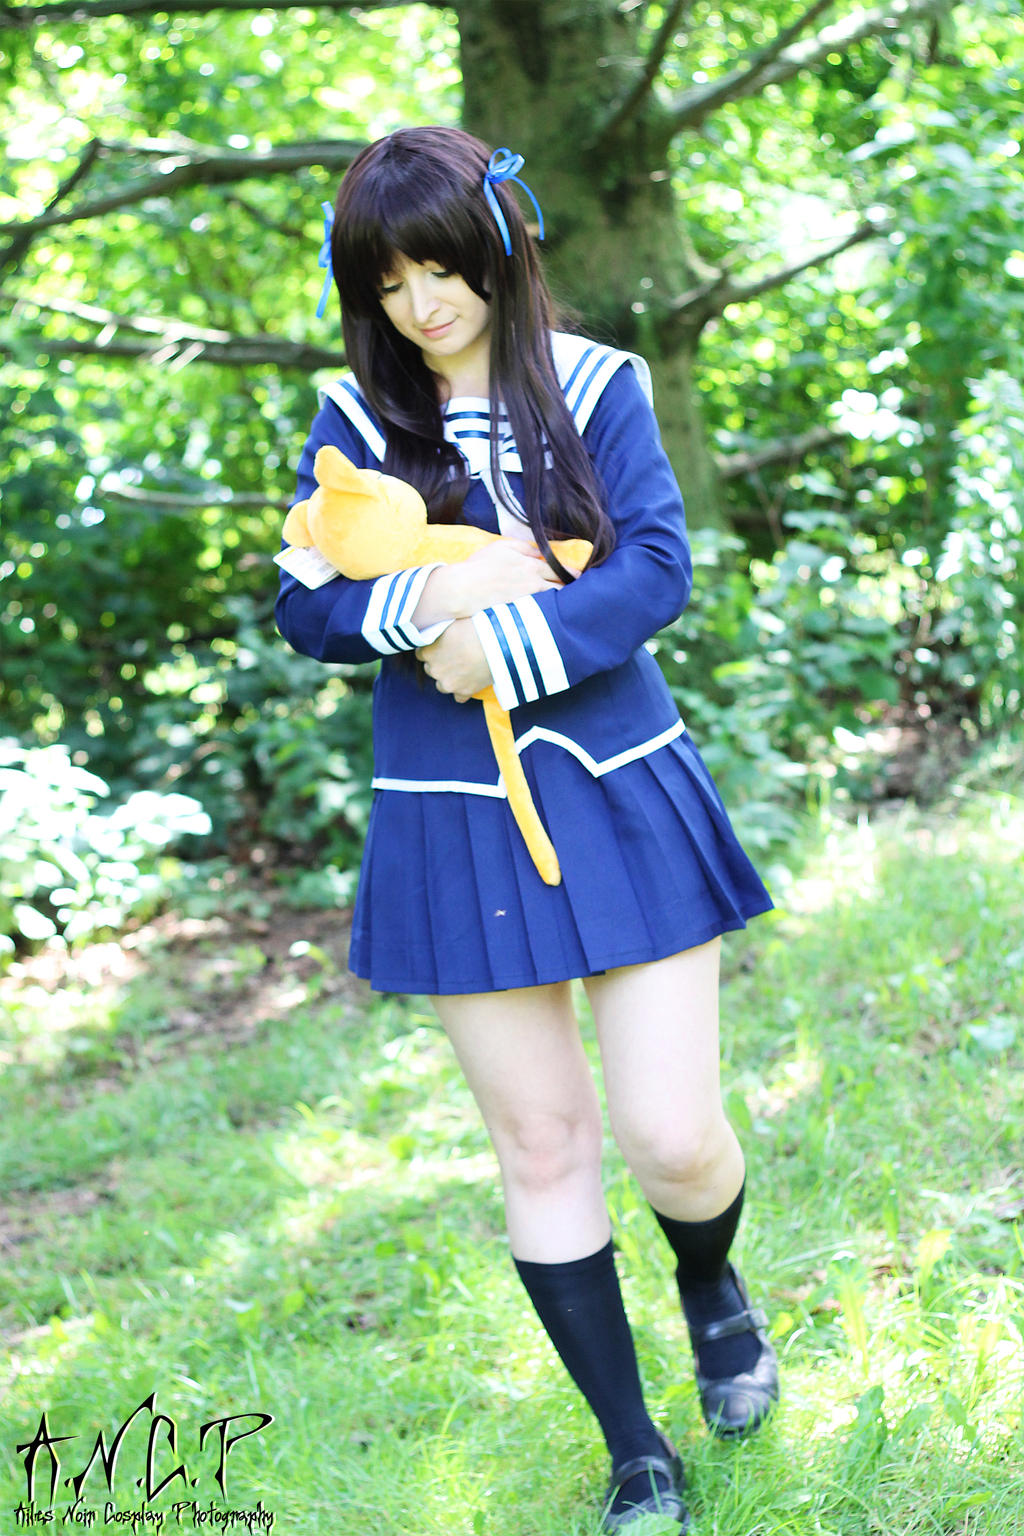 Fruits Basket #3: Tohru Honda - Let's Go Home by AilesNoir ... Tohru Fruits Basket Outfits